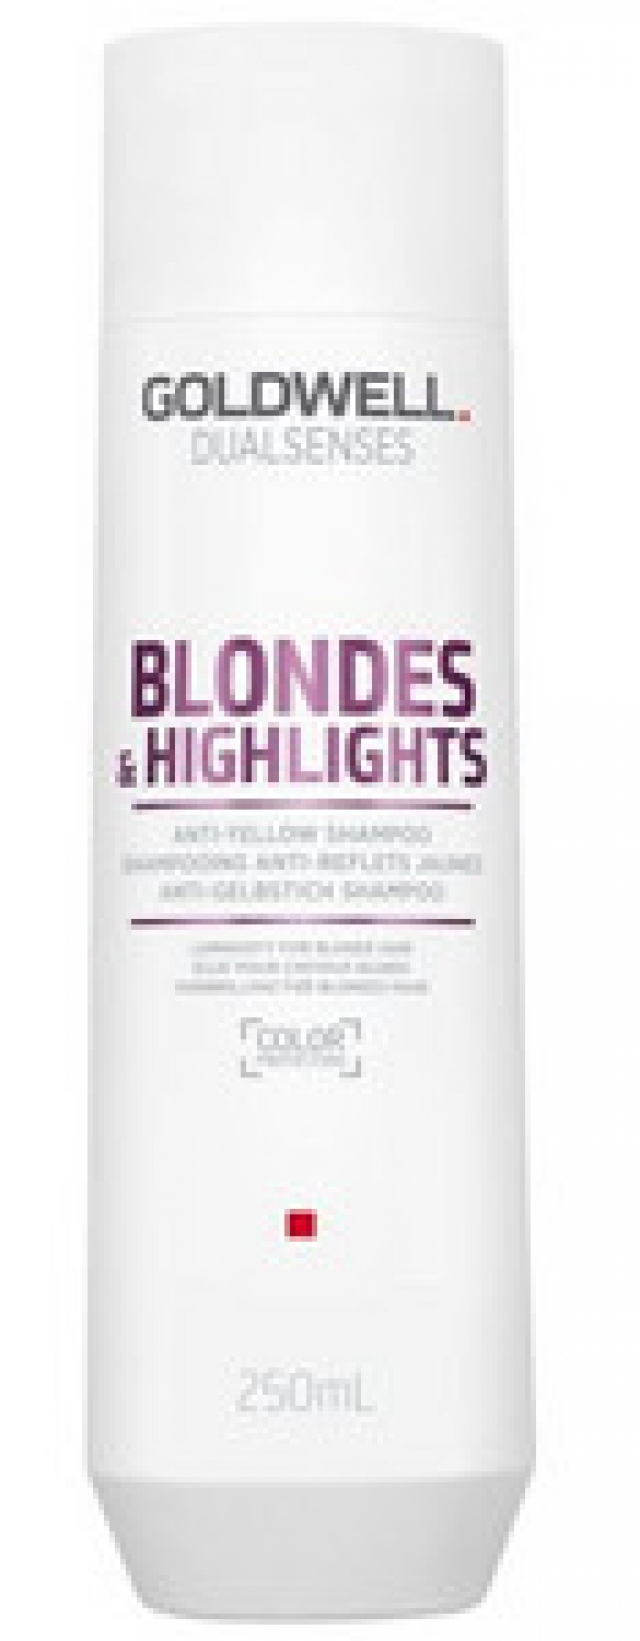 Goldwell Dualsenses Blondes & Highlights Anti-Yellow Shampoo 30ml